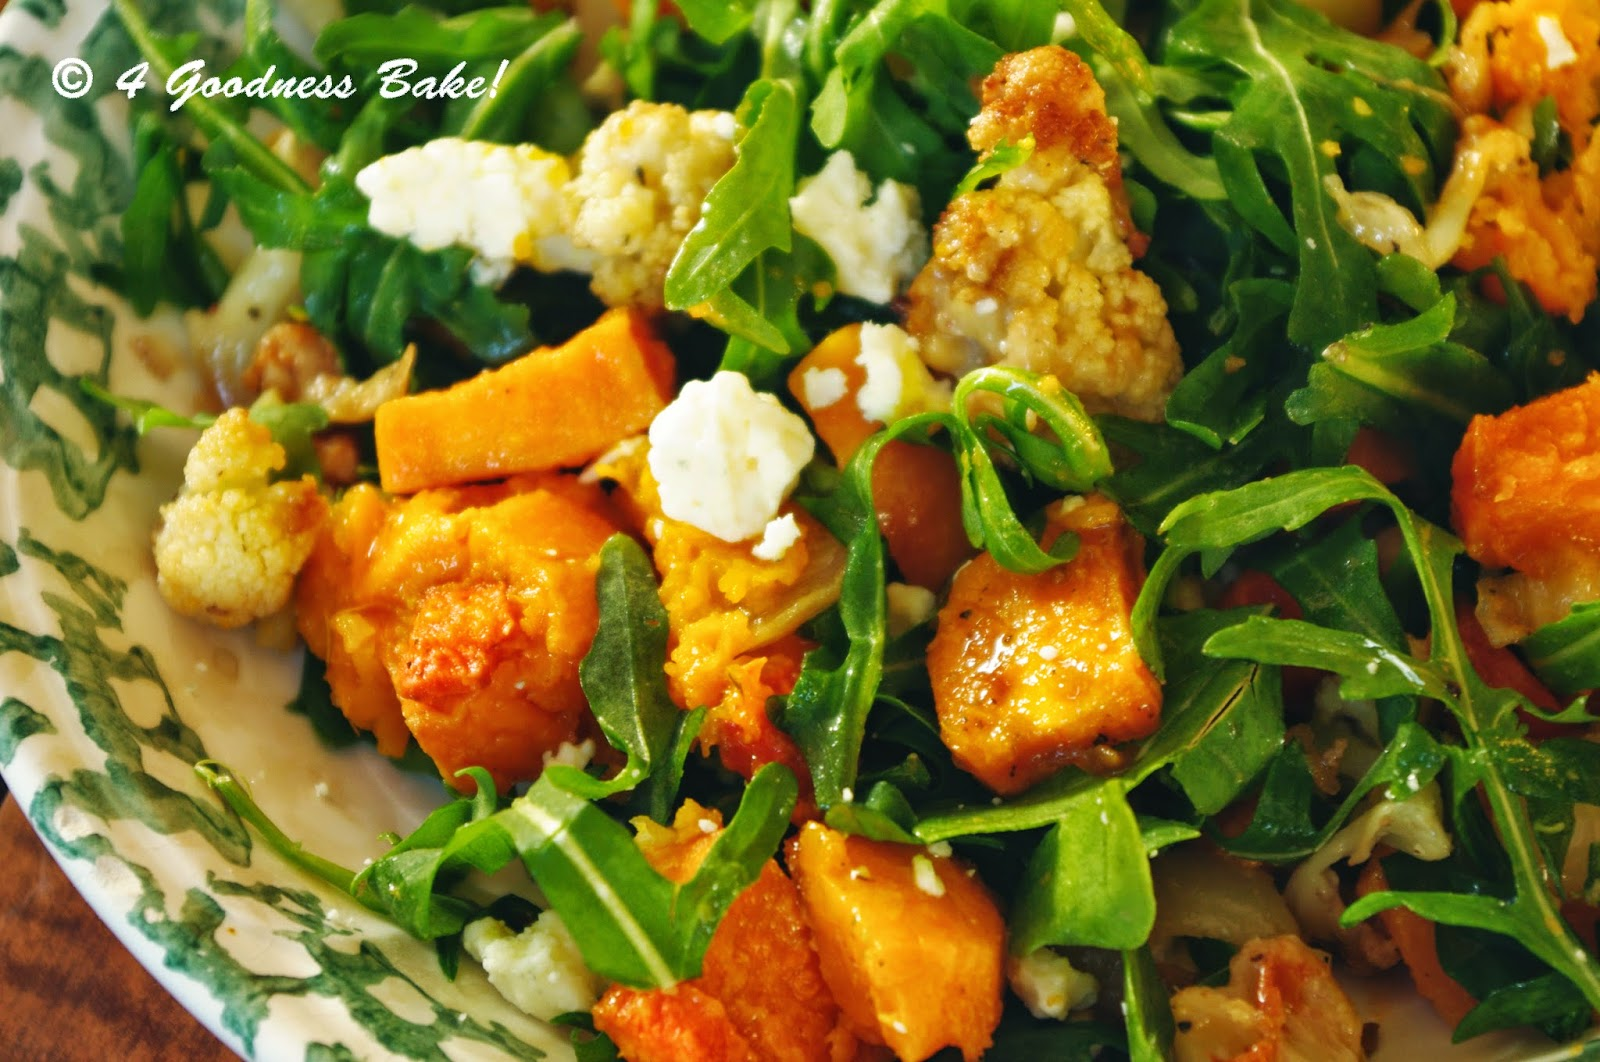 goodness bake!: Arugula, Roasted Sweet Potatoes and Gorgonzola Salad ...